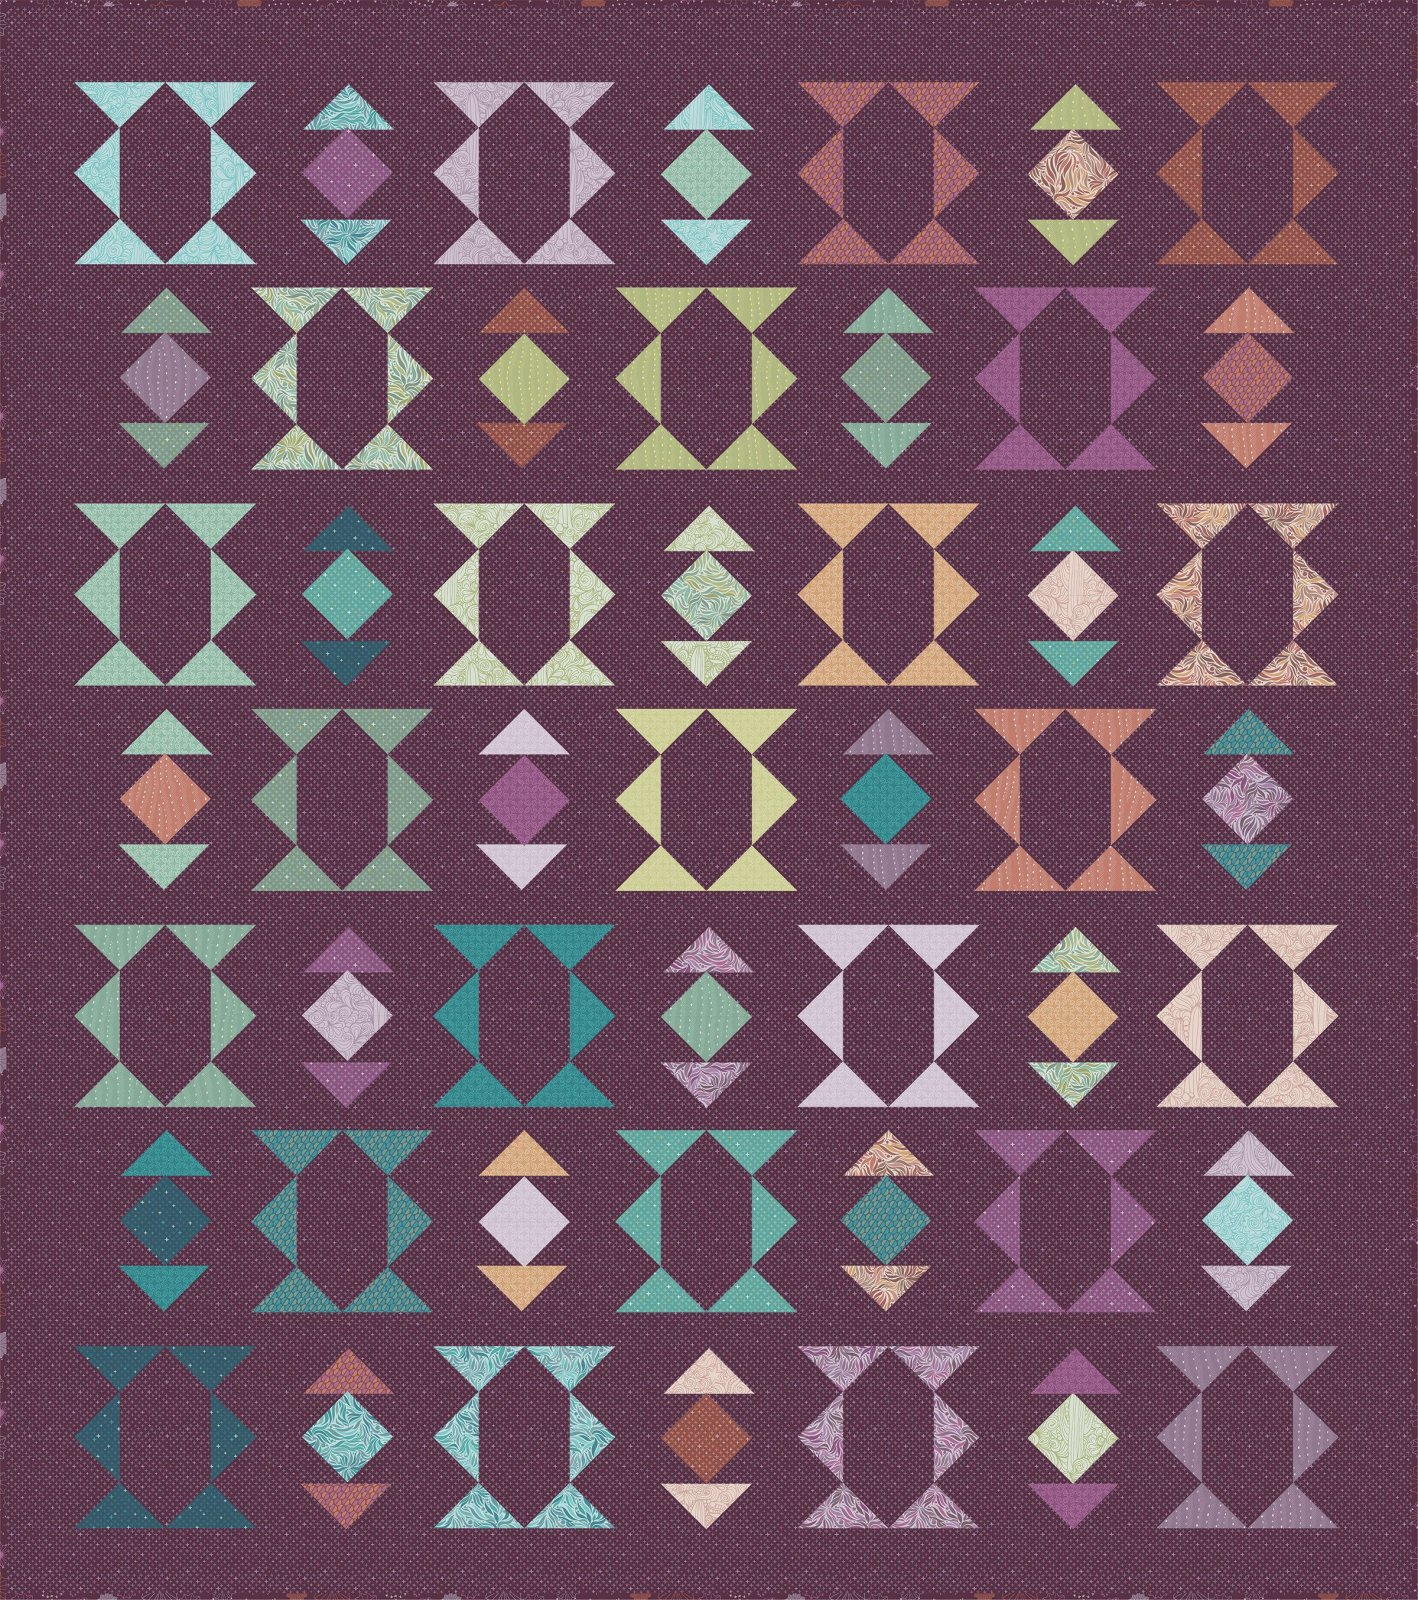 EESC-CHCSUP01 - SUPERSTITION QUILT PATTERN BY CHRISTINA CAMELLI LLC